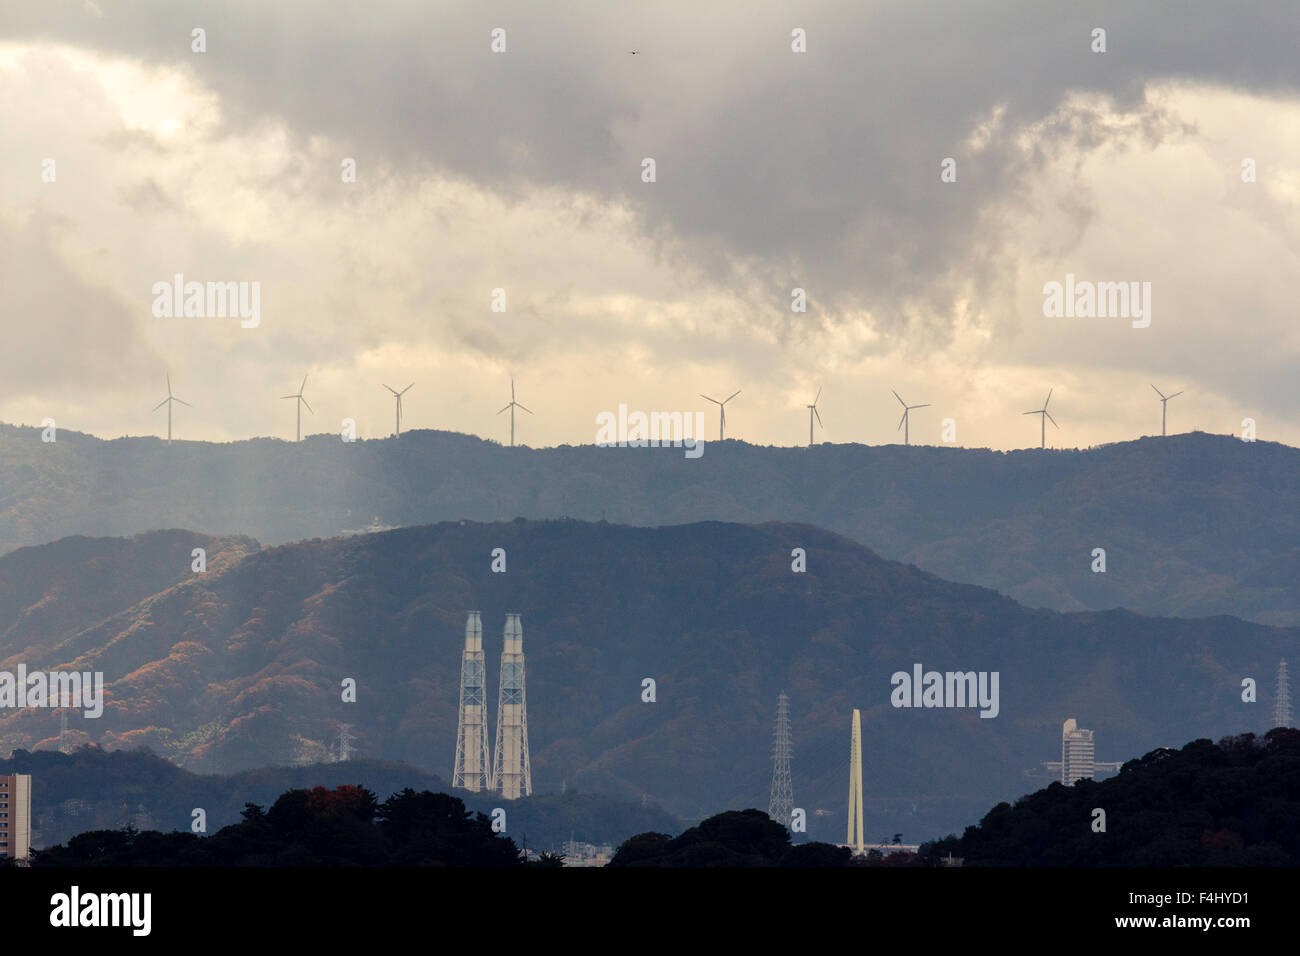 Wakayama, Japan, silhouetted wind turbines on top of distant mountains with various industrial chimneys in foreground. - Stock Image